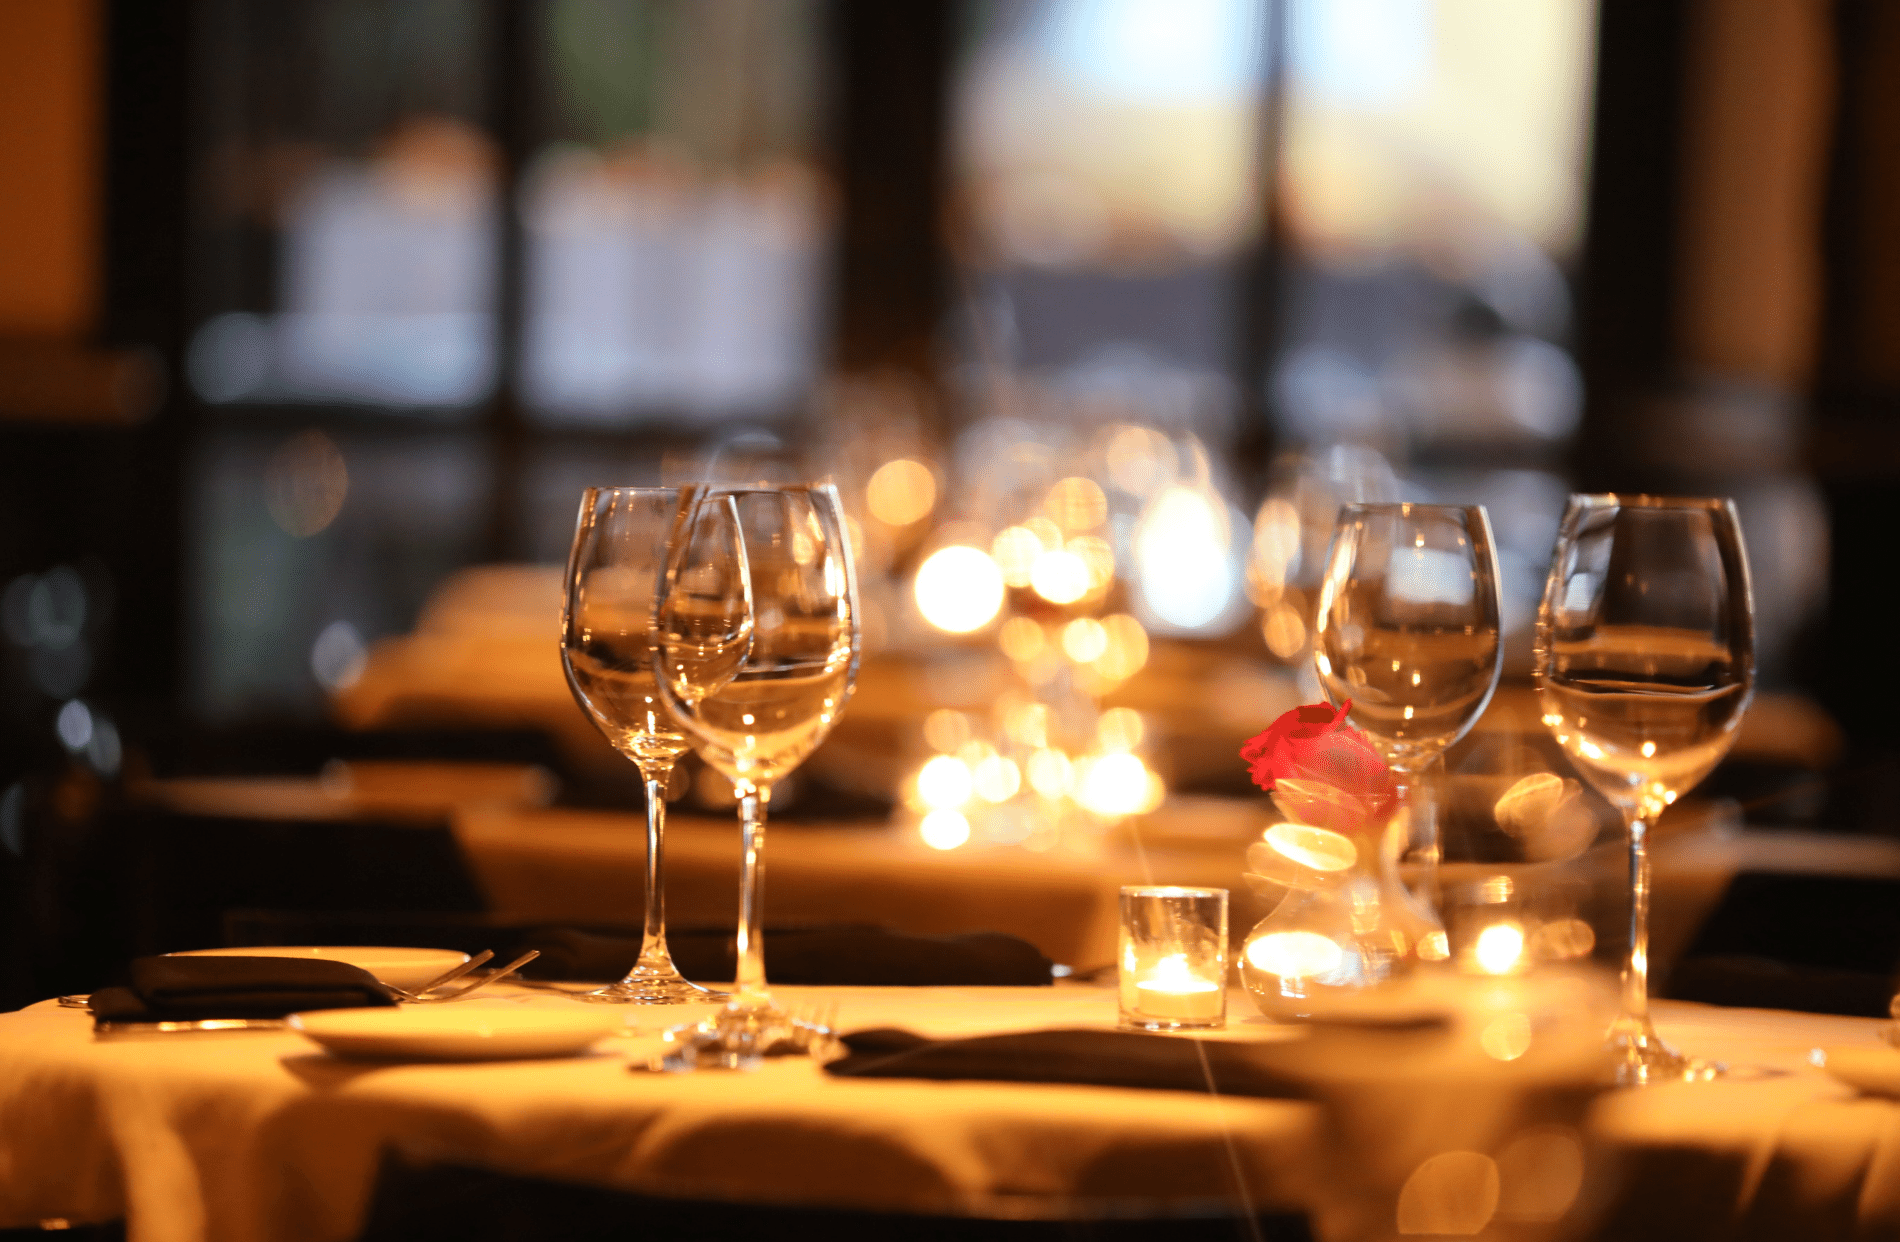 Fine dining restaurant table setting with wine goblets and dishes